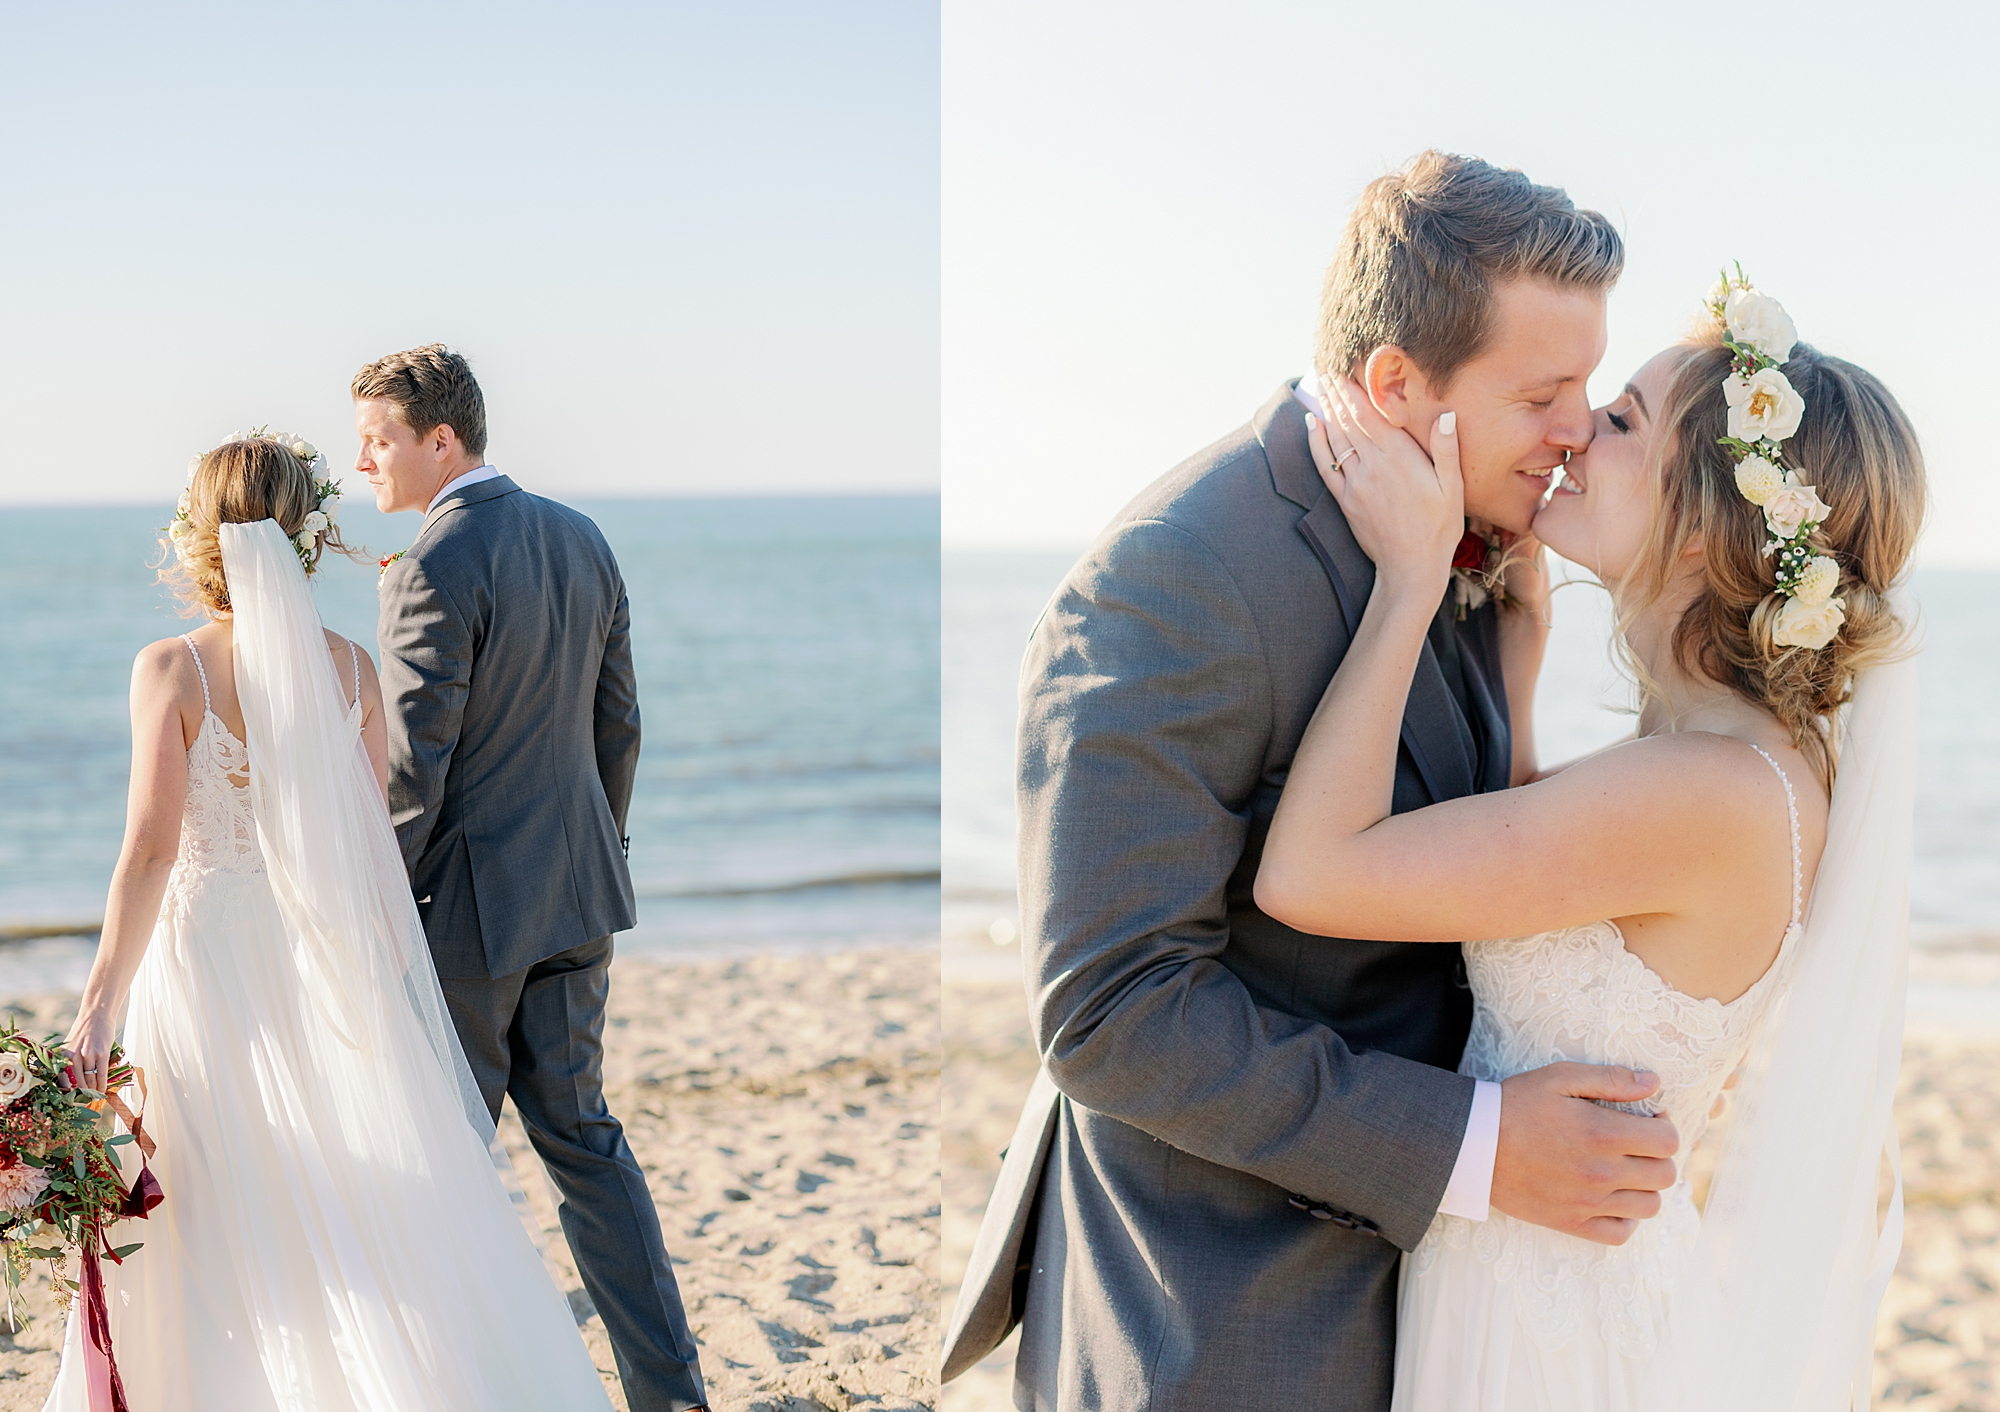 Cape May Wedding Photography by Magdalena Studios 0022